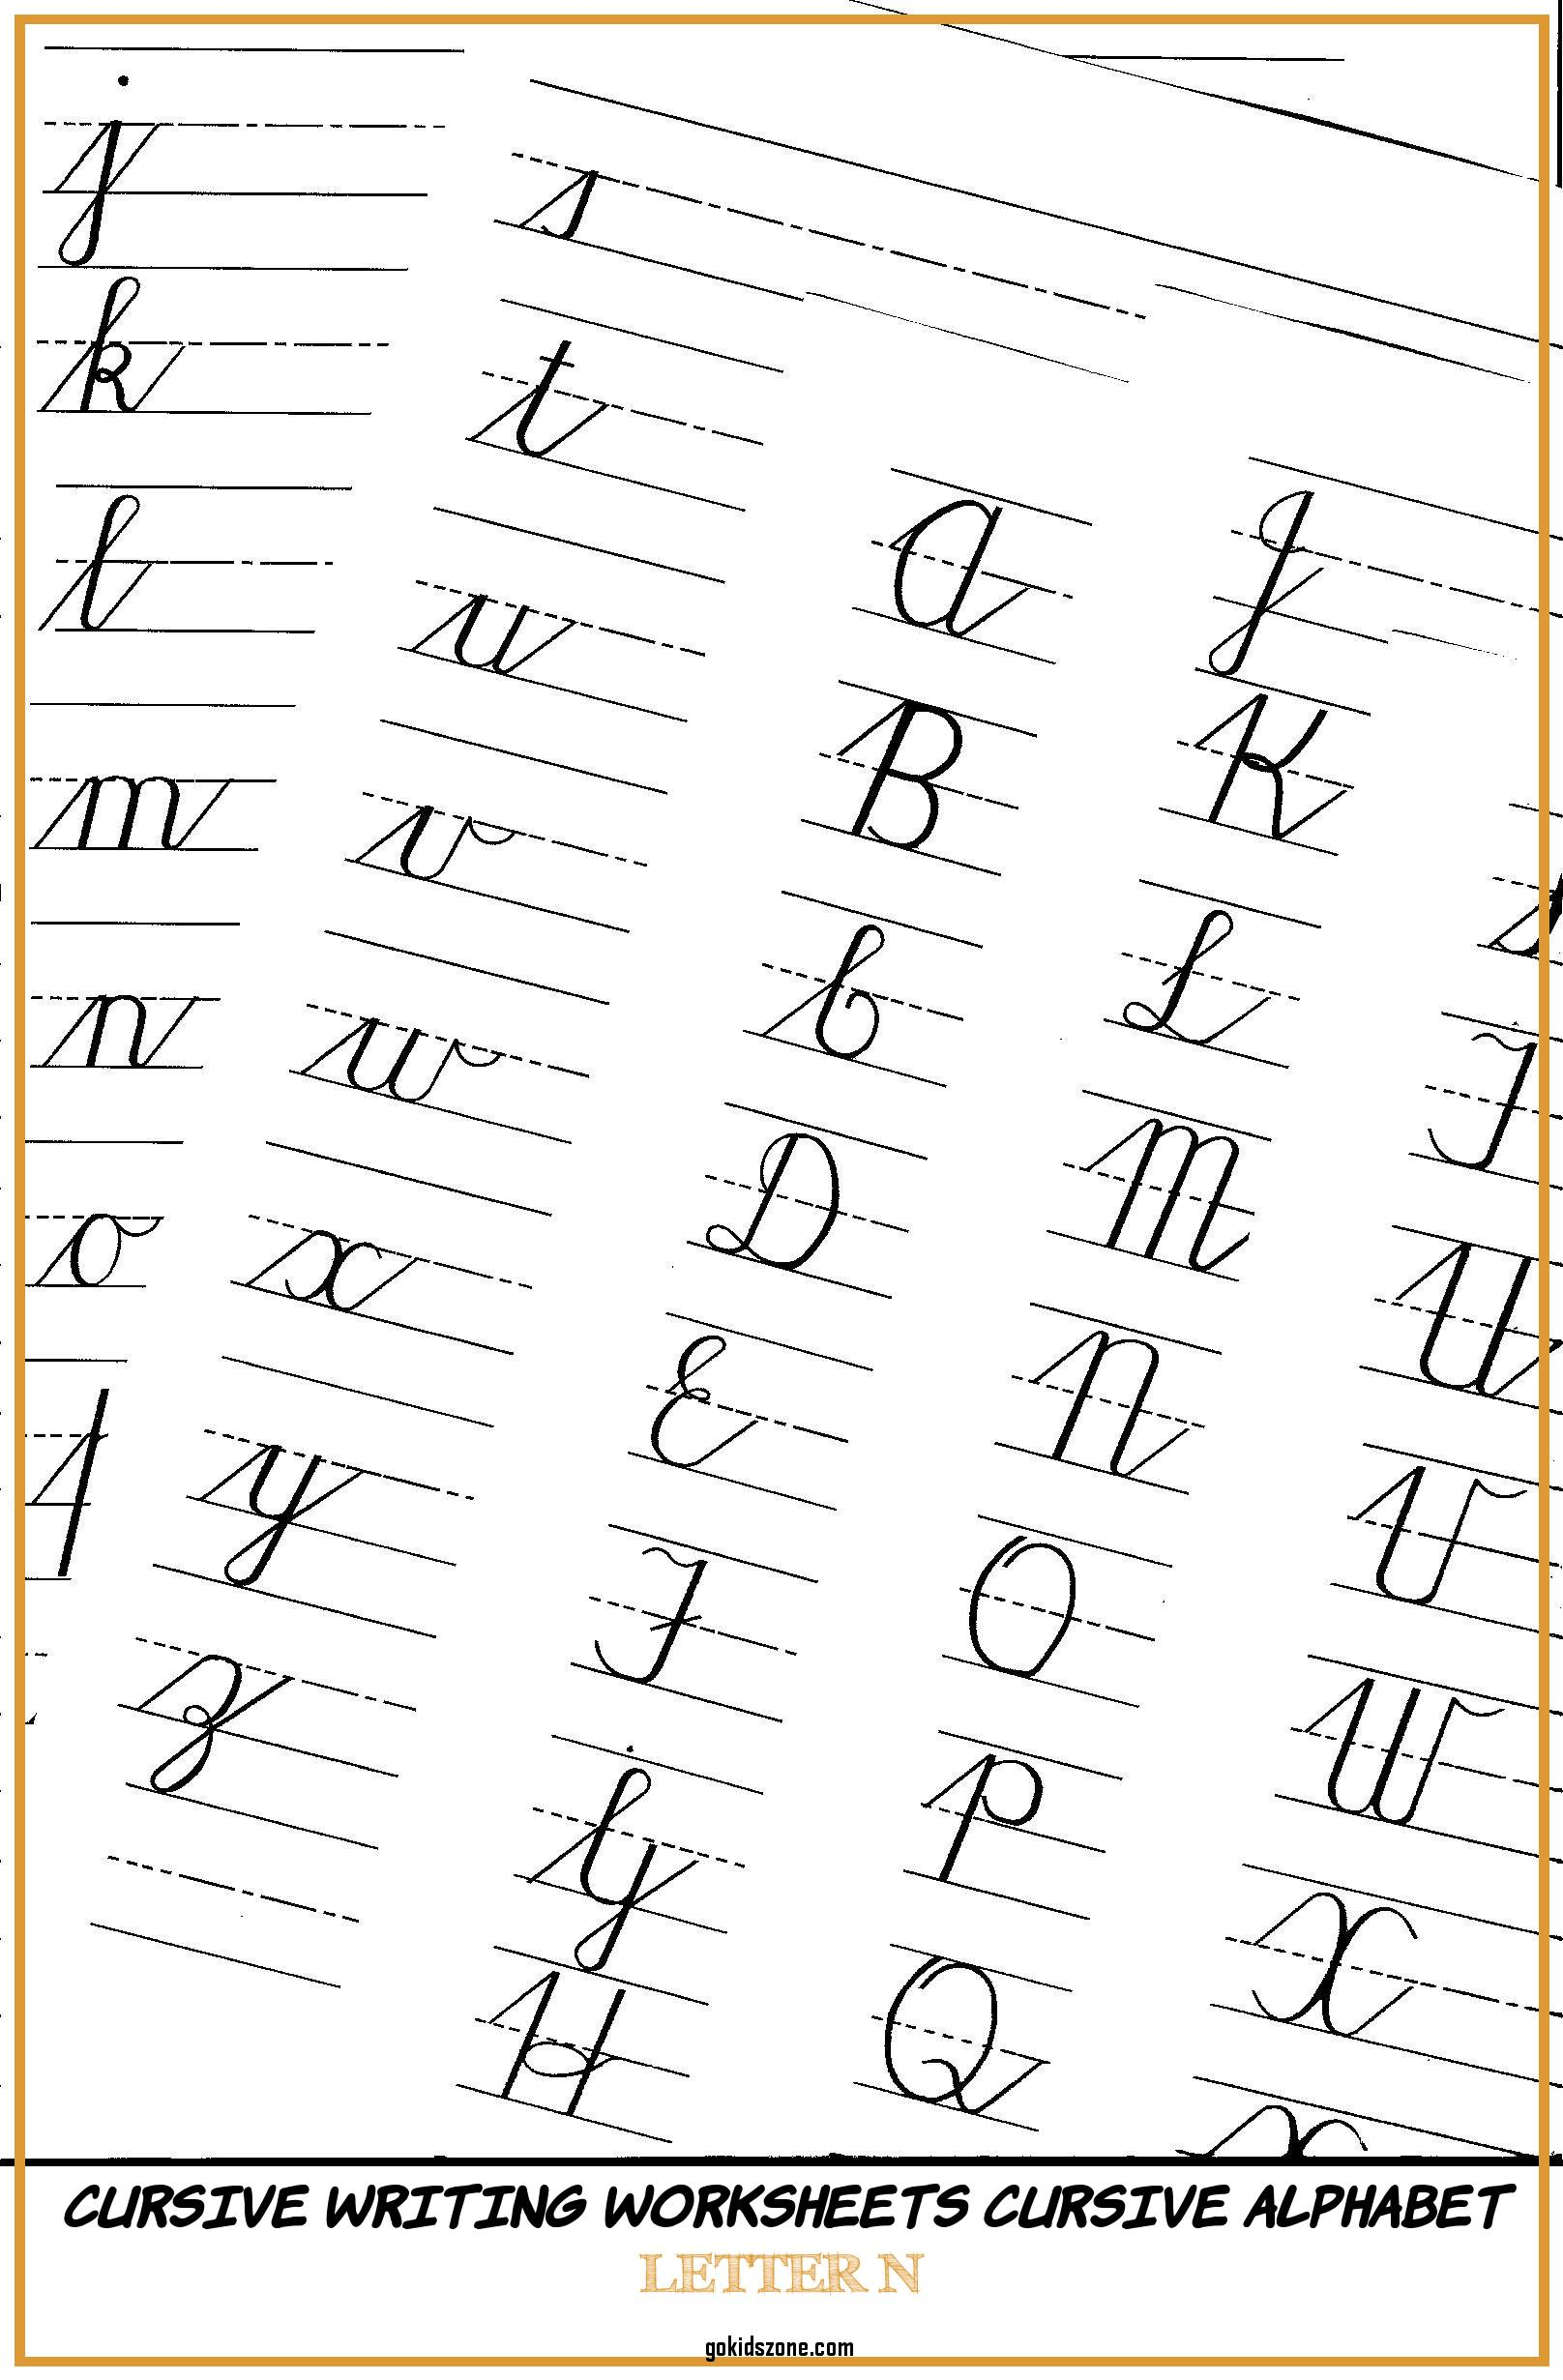 Coloring Book Tracing Worksheets For Cursive Writing Letter